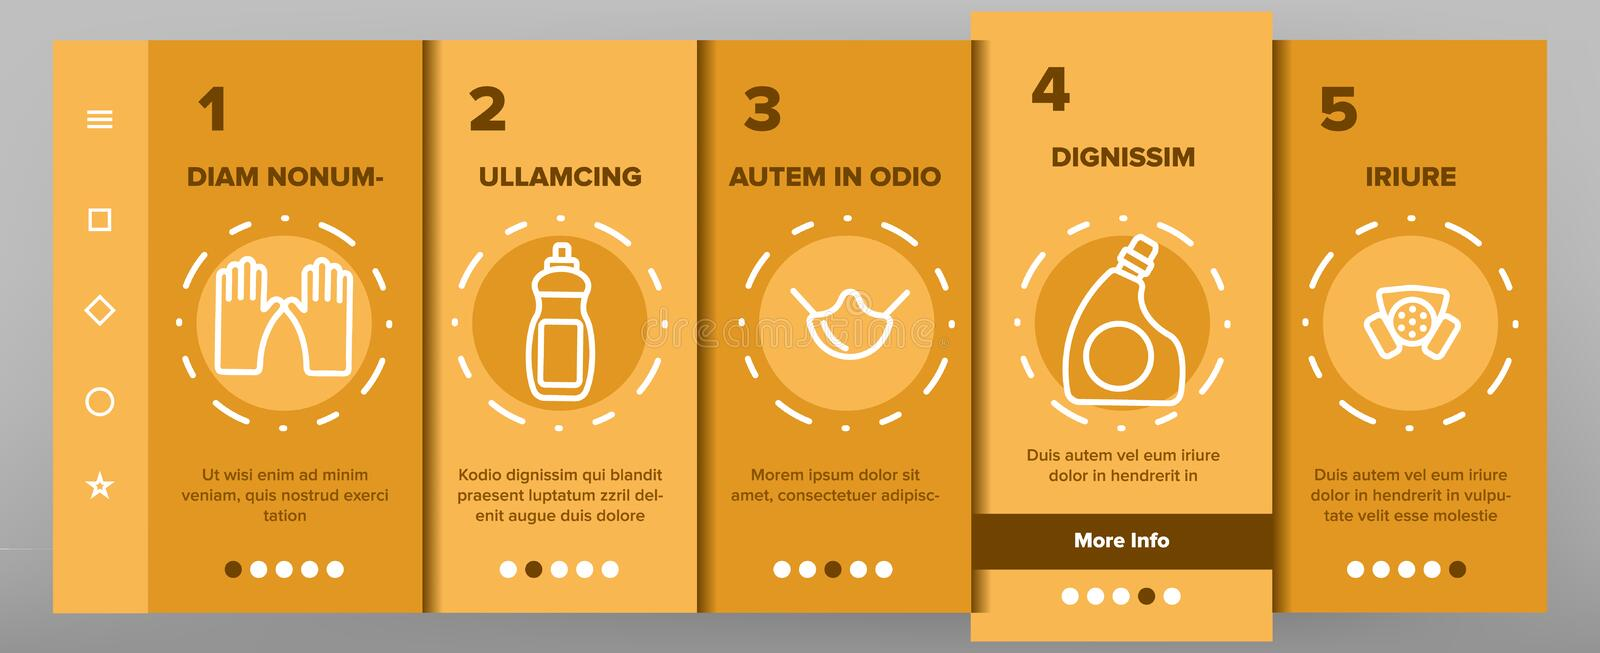 Disinfectant, Antibacterial Substance Vector Onboarding royalty free illustration